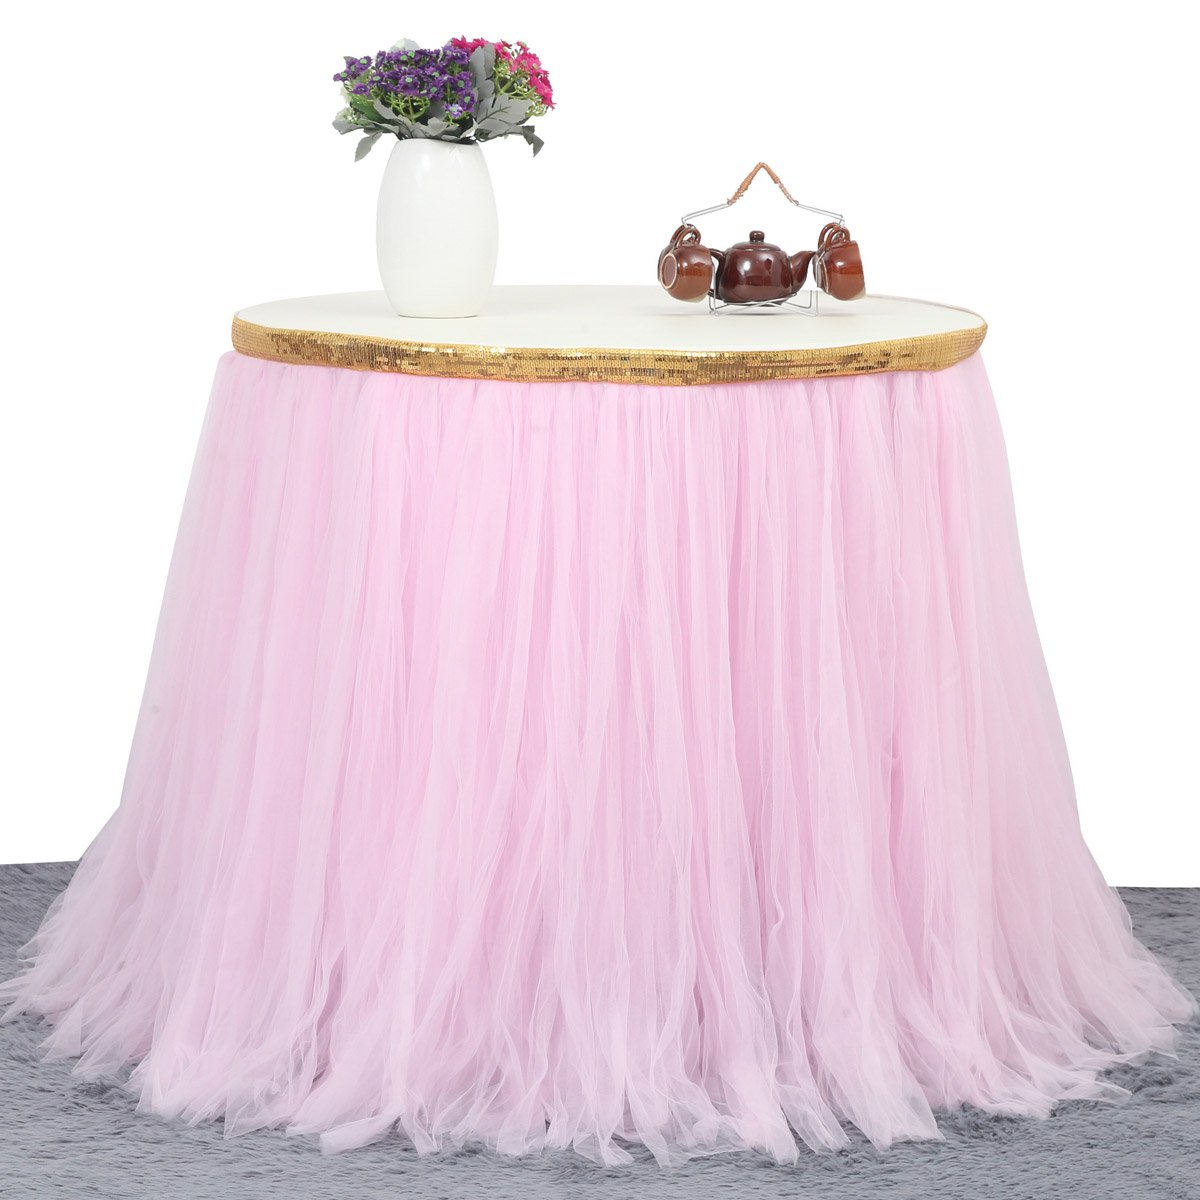 9ft Gold/Pink Tulle Table Skirt Tutu Table Skirts Wedding Birthday Baby Shower Party Table Skirting by HB HBB MAGIC (Image #3)